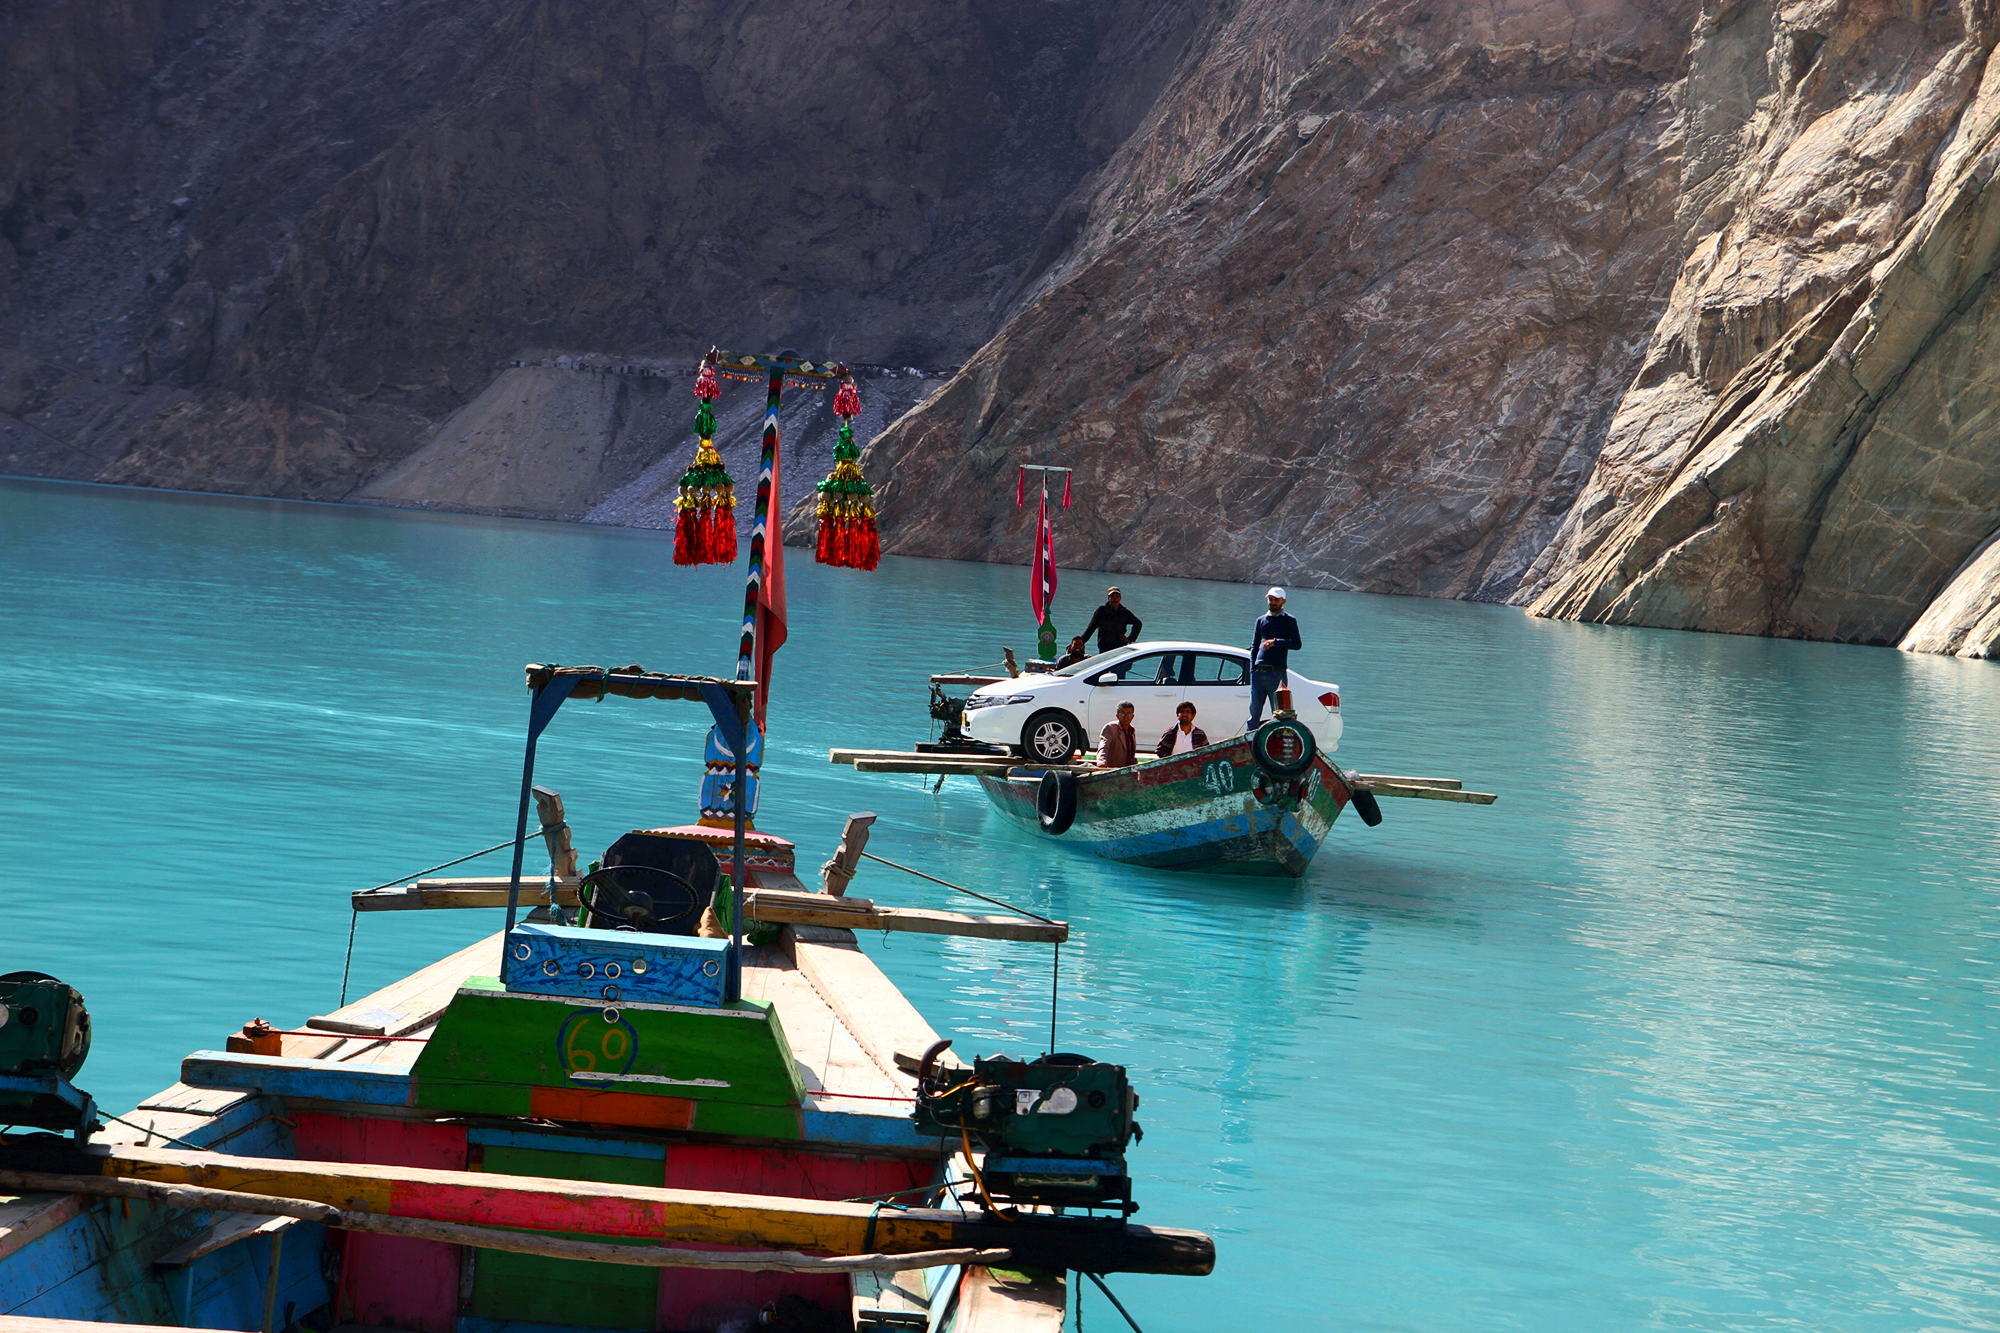 An improvised ferry in Attabad Lake, Northern Pakistan | By Asad Munir [2000x1333]